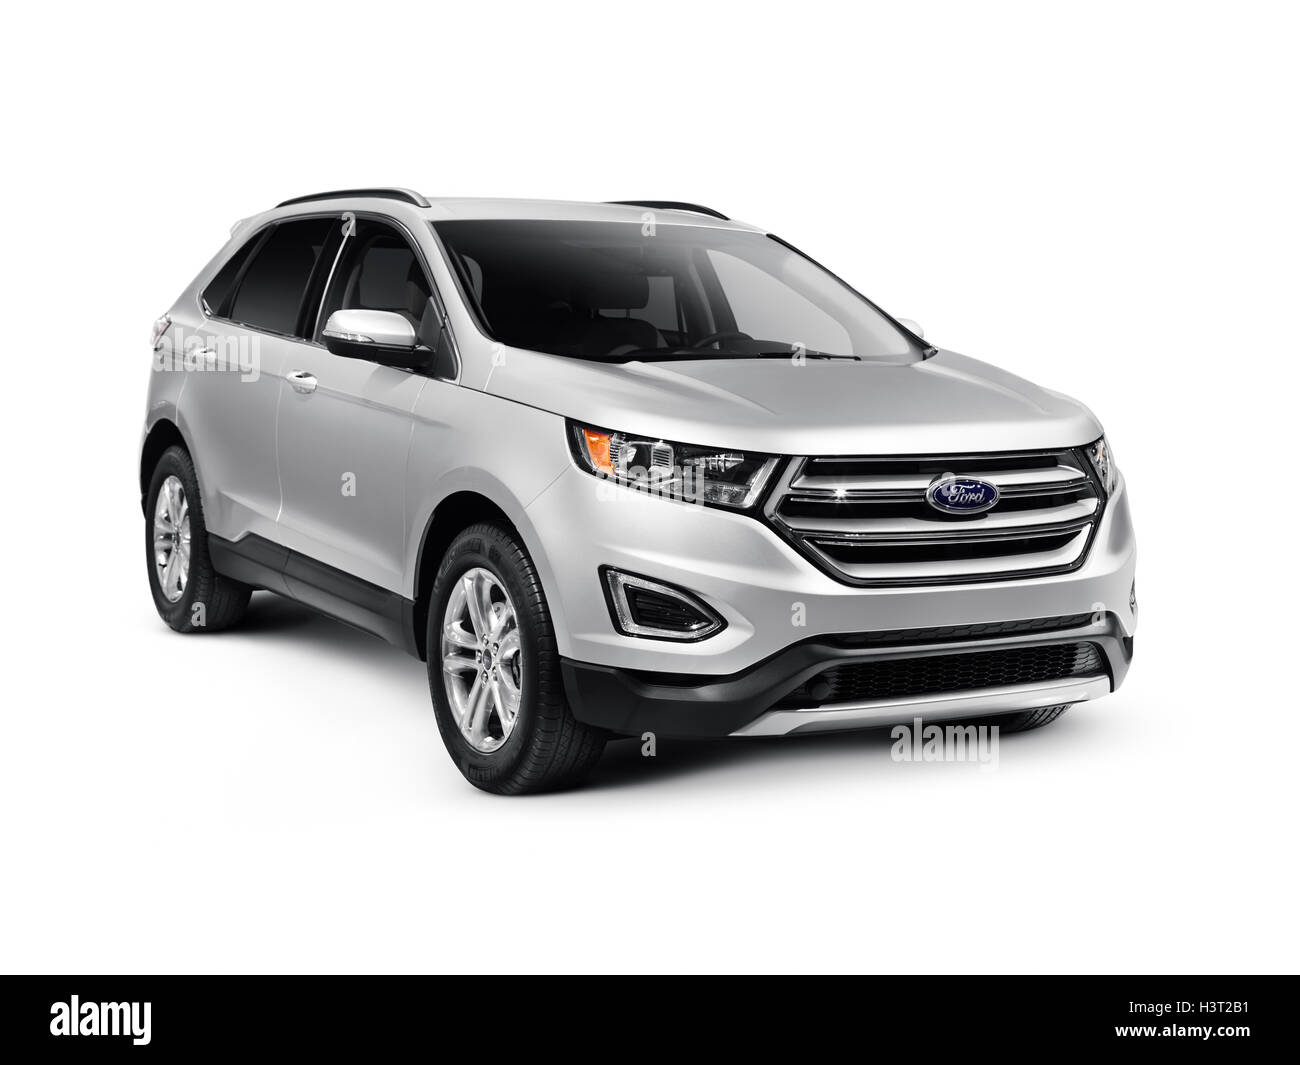 Silver 2016 Ford Edge Sport car SUV crossover vehicle isolated on white background with clipping path - Stock Image